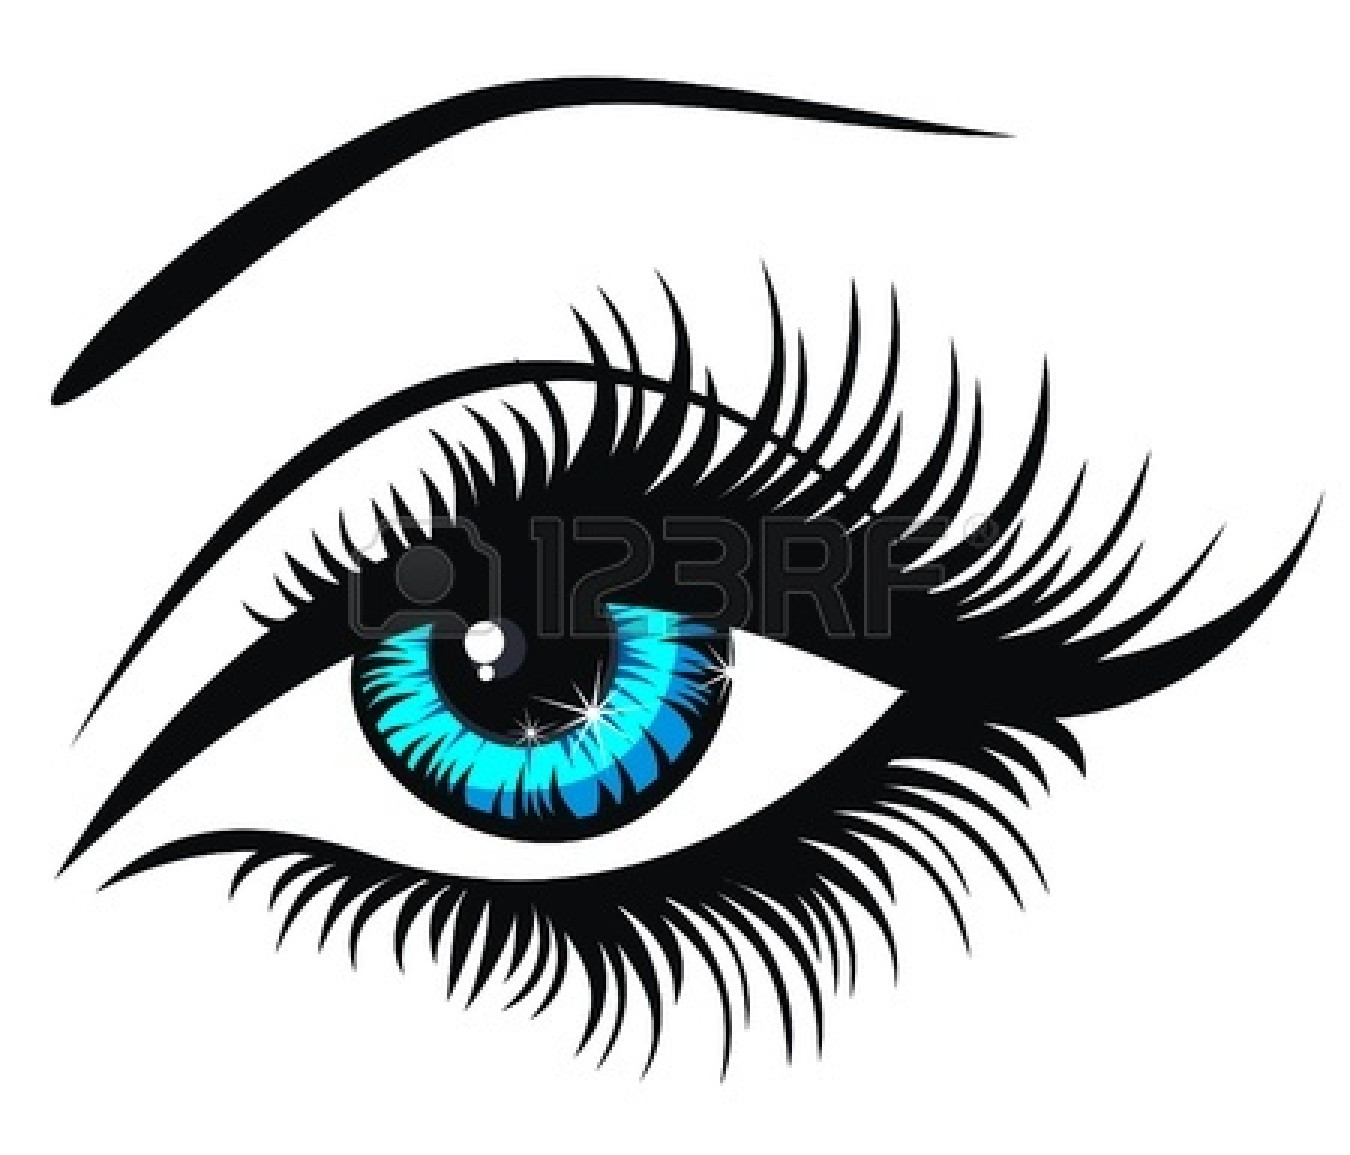 1350x1155 Clipart Images Of Eyes Free